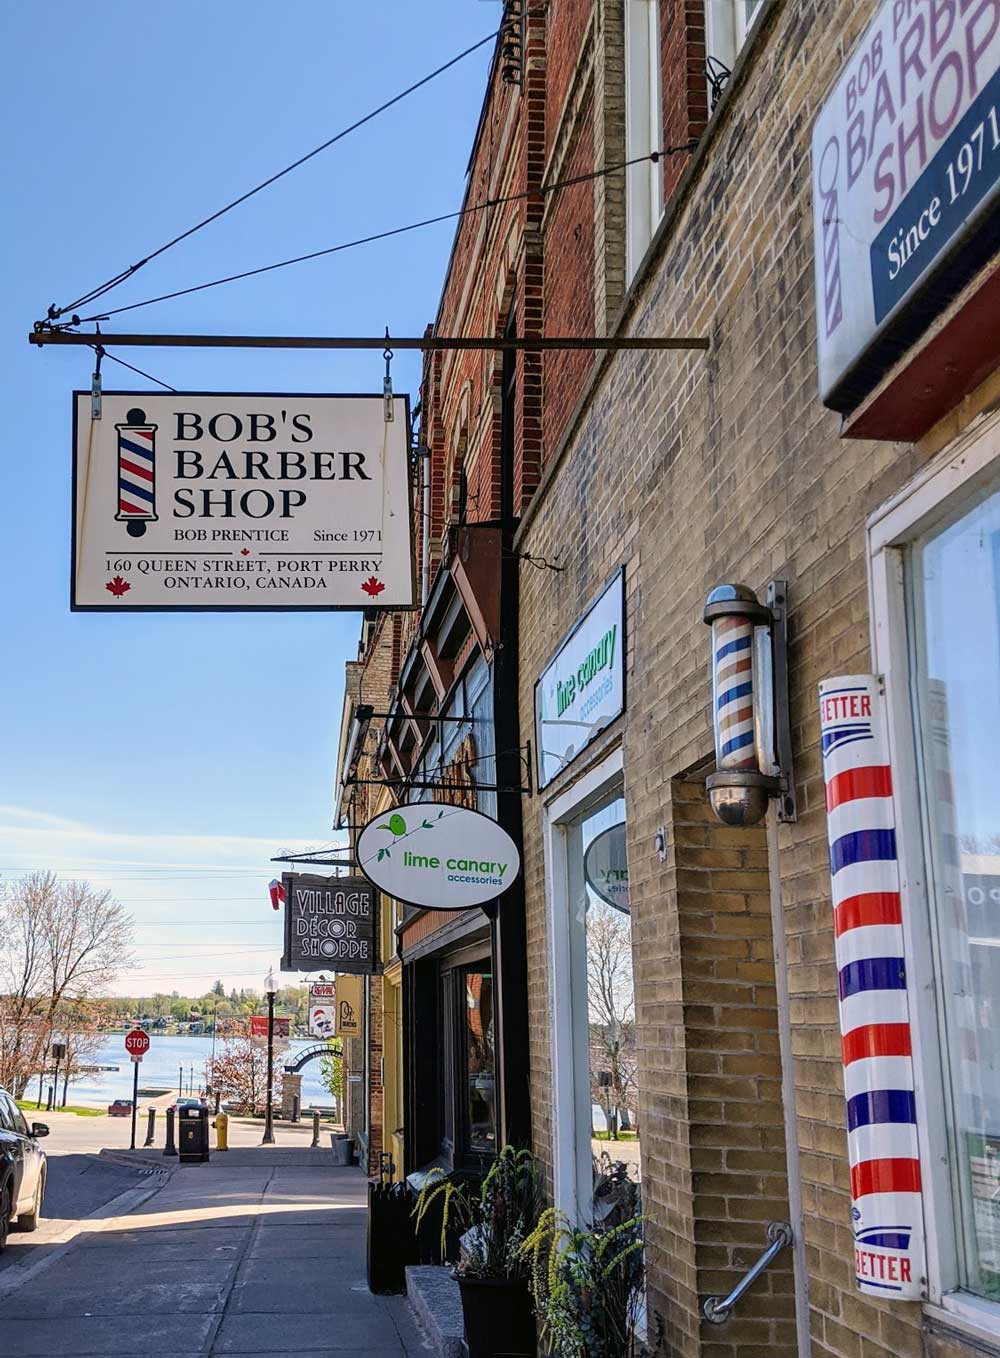 Bob's Barber Shop, Port Perry, Ontario